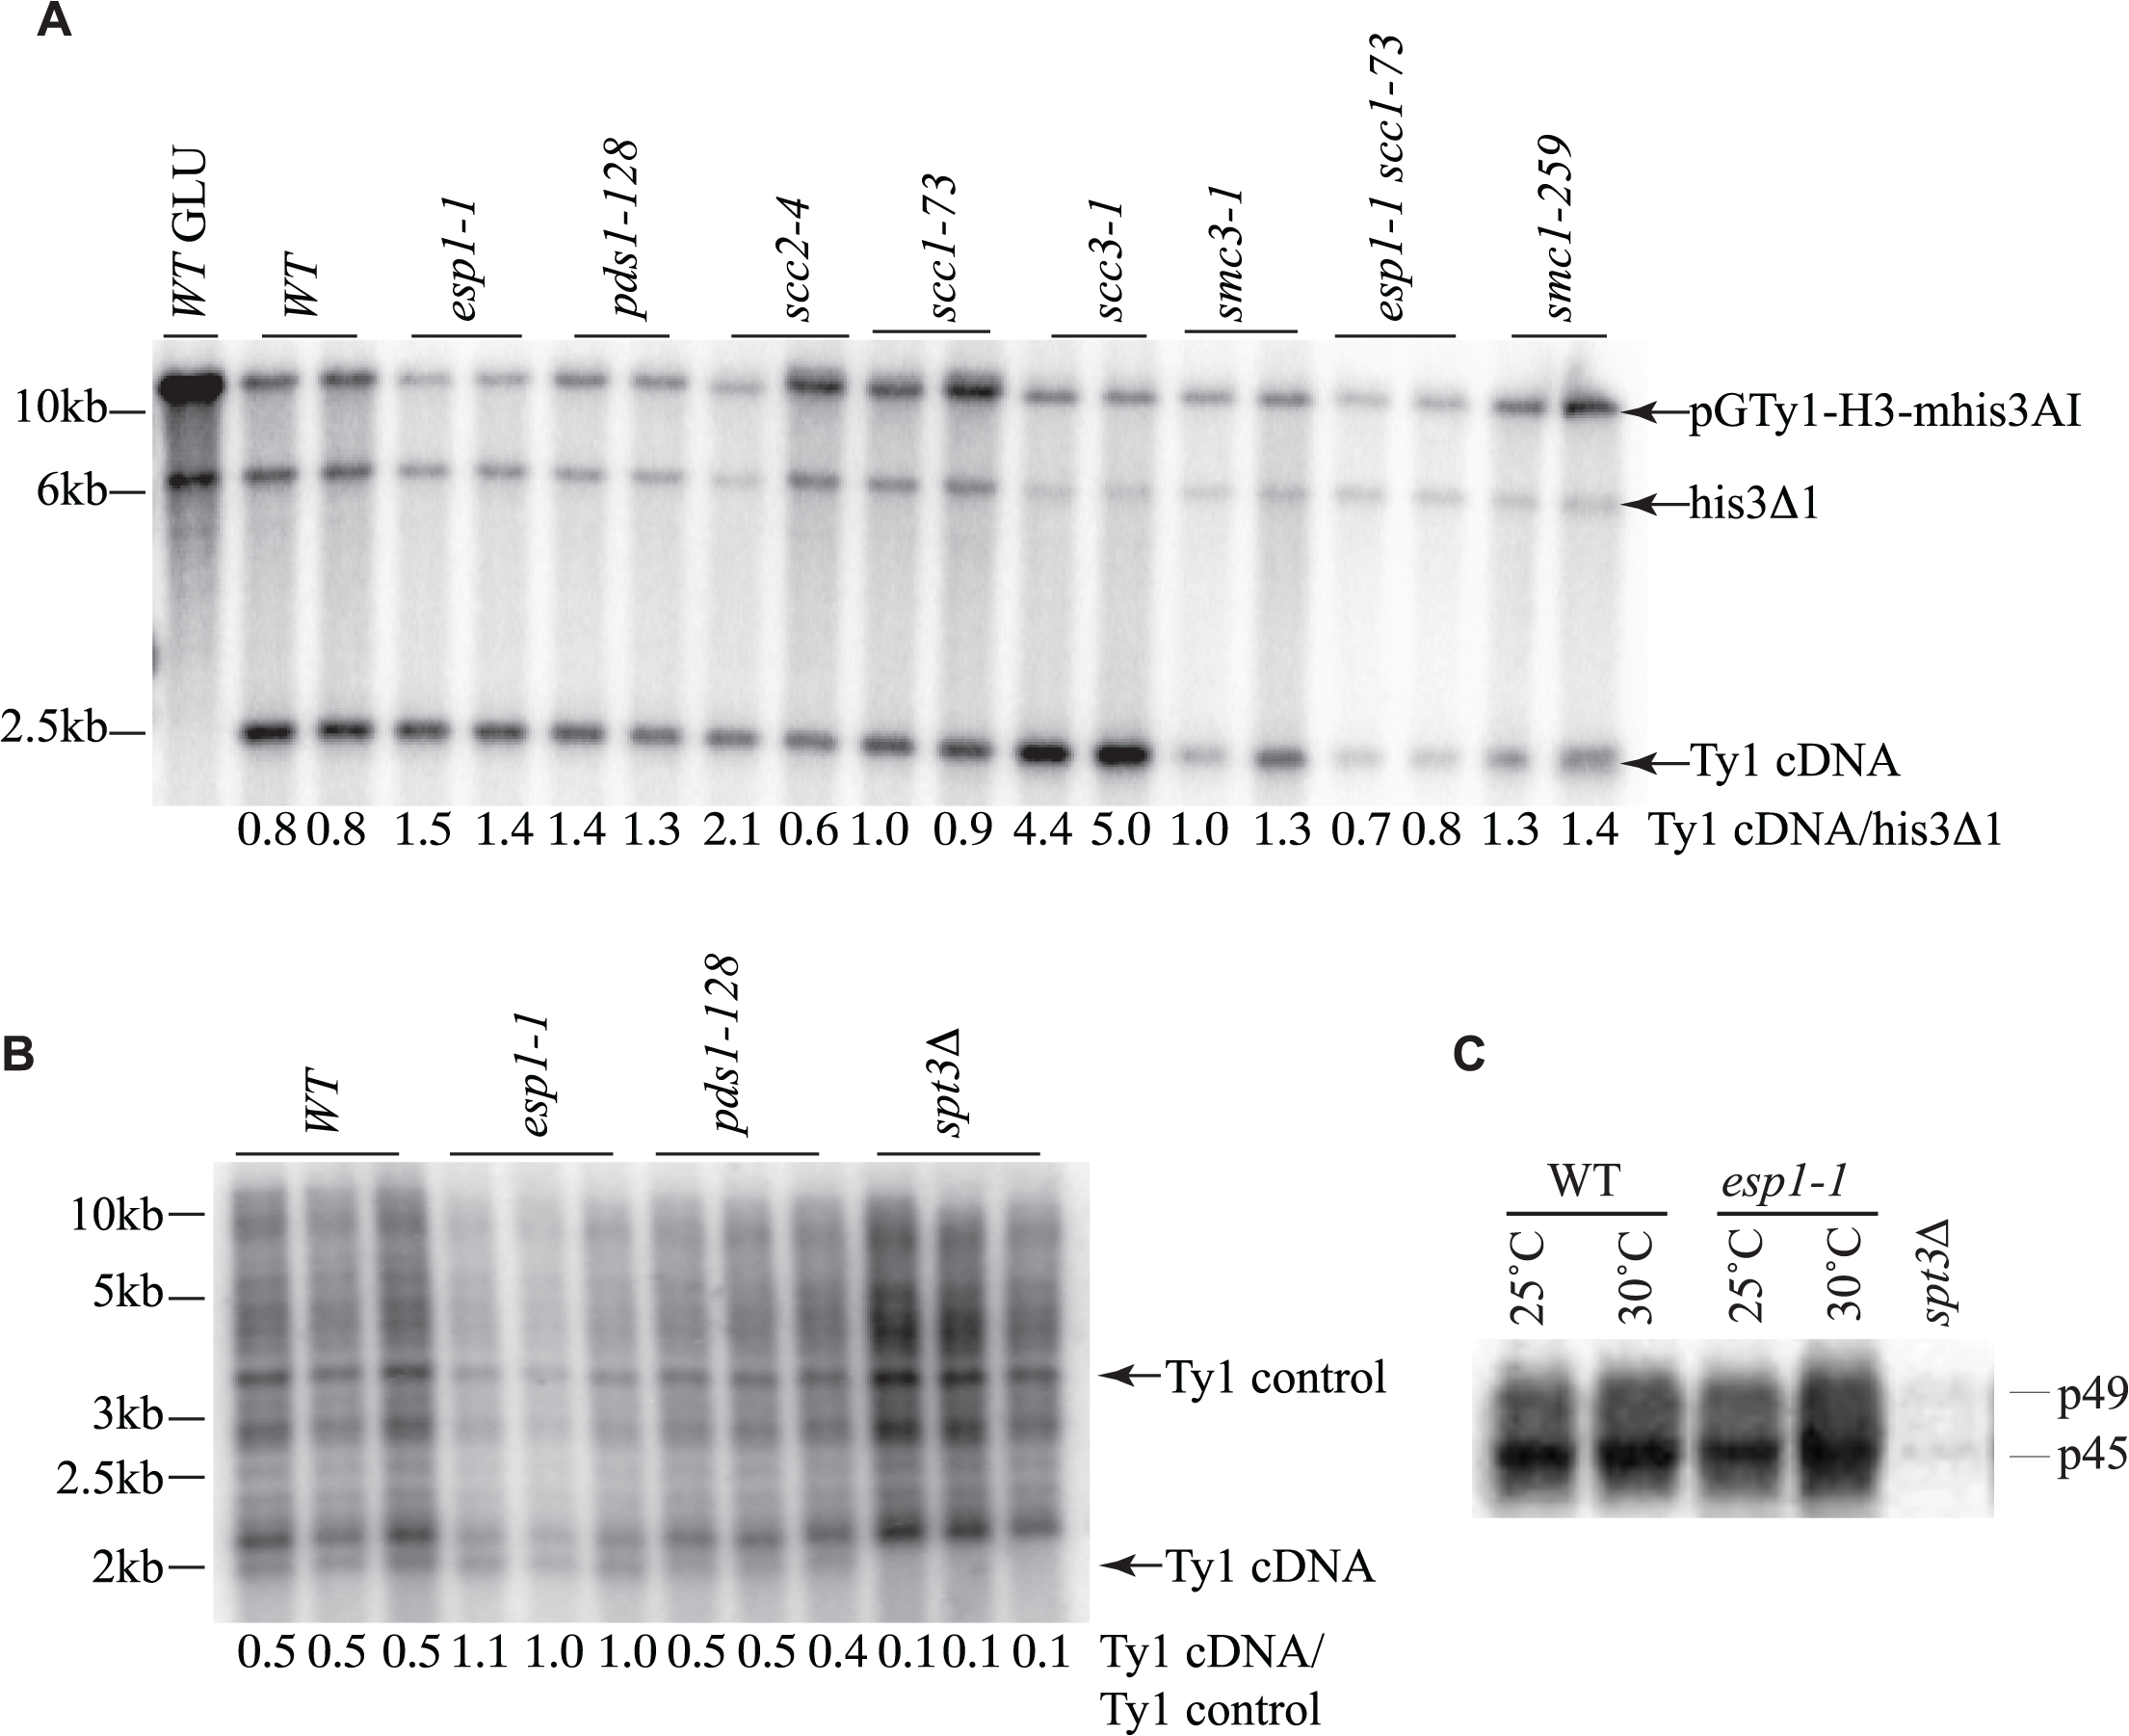 Ty1 cDNA levels are not affected in <i>esp1</i> and <i>pds1</i> mutants.